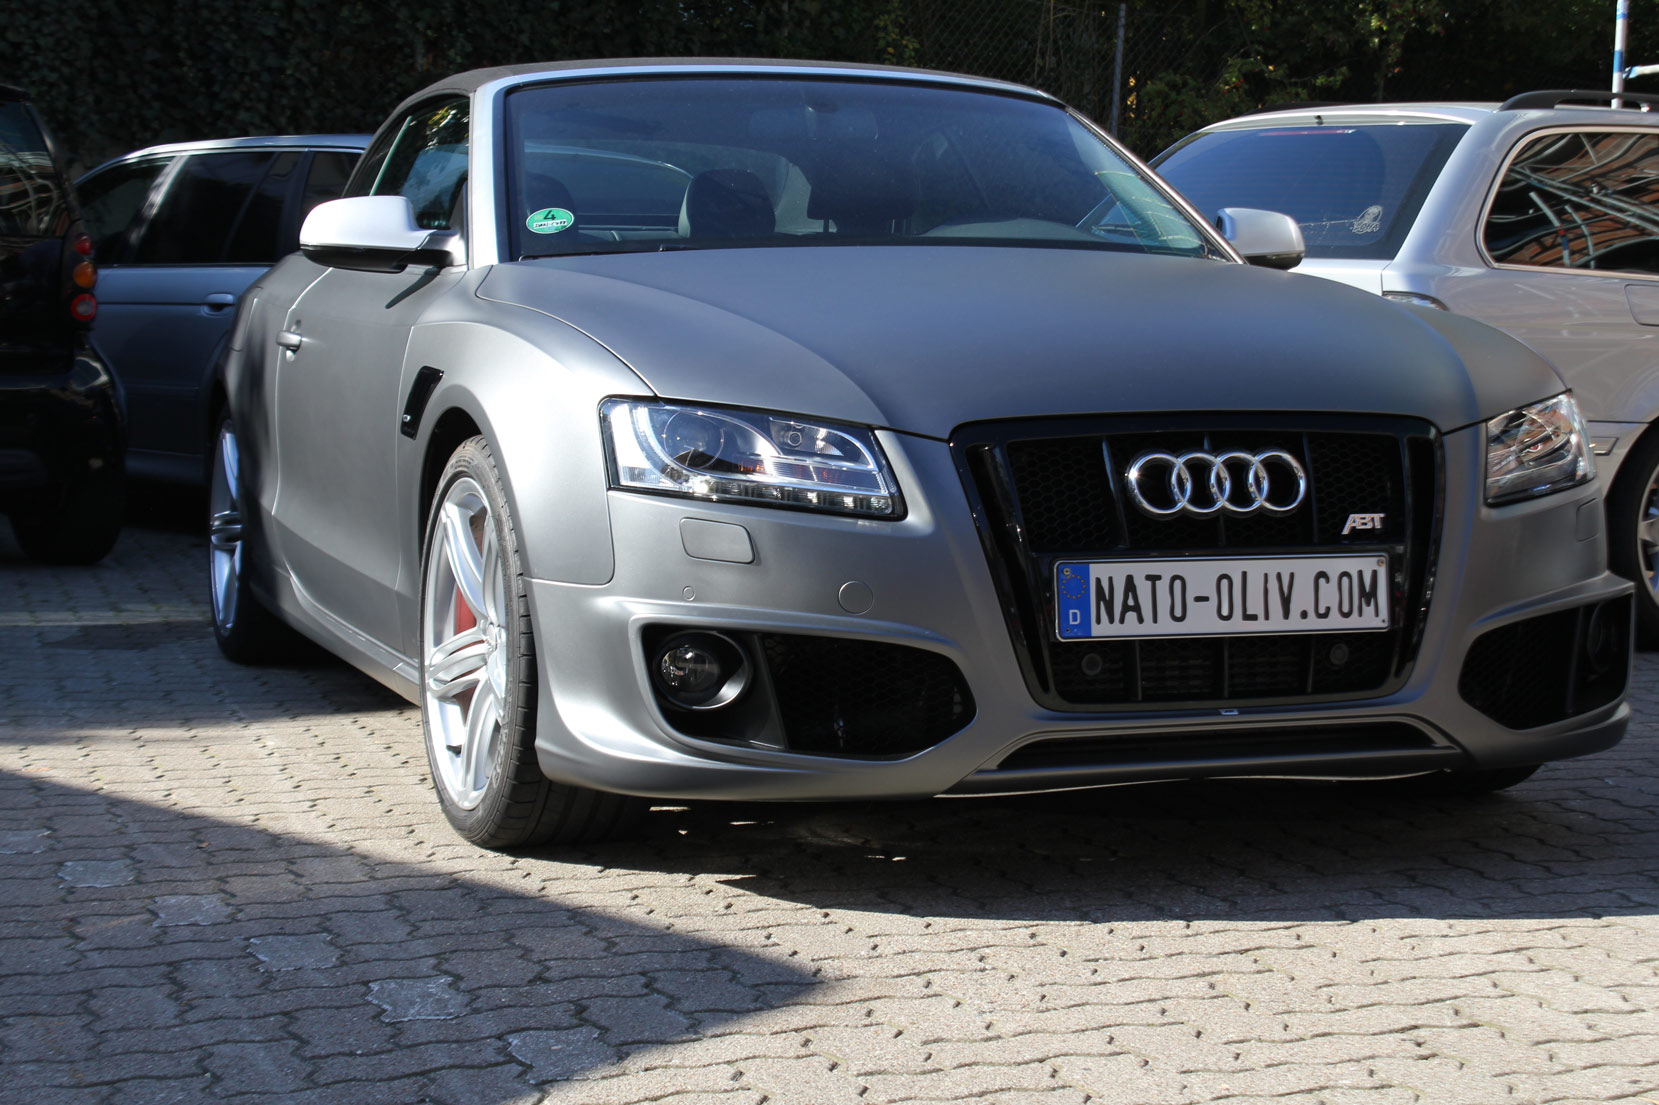 Audi_A5_Cabrio_ABT_Anthrazit_Matt_Metallic_11